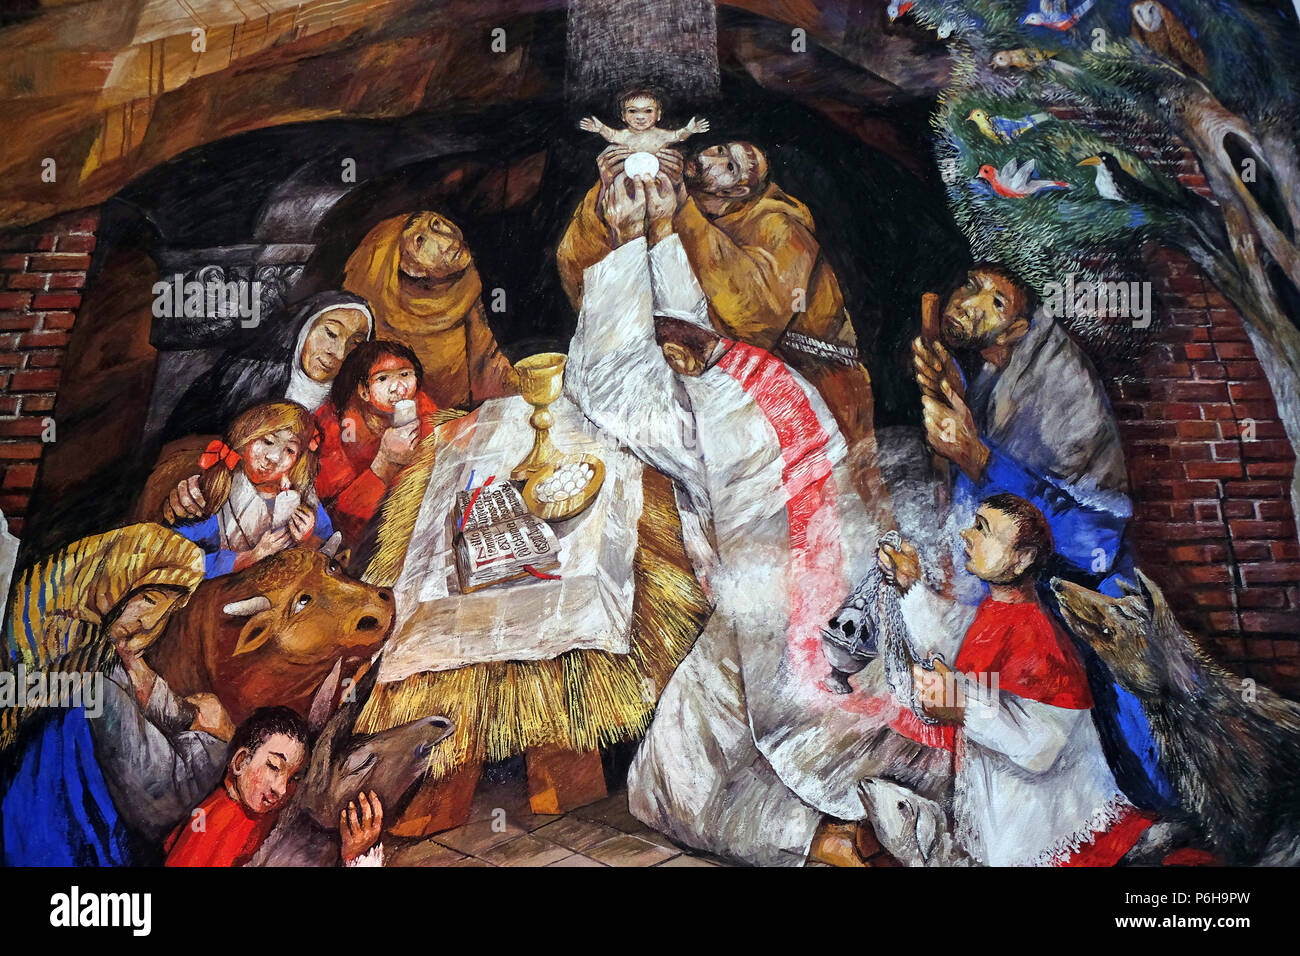 St. Francis celebrates Christmas in Greccio fresco by Sieger Koeder in the Chapel of St. Francis in Ellwangen, Germany Stock Photo